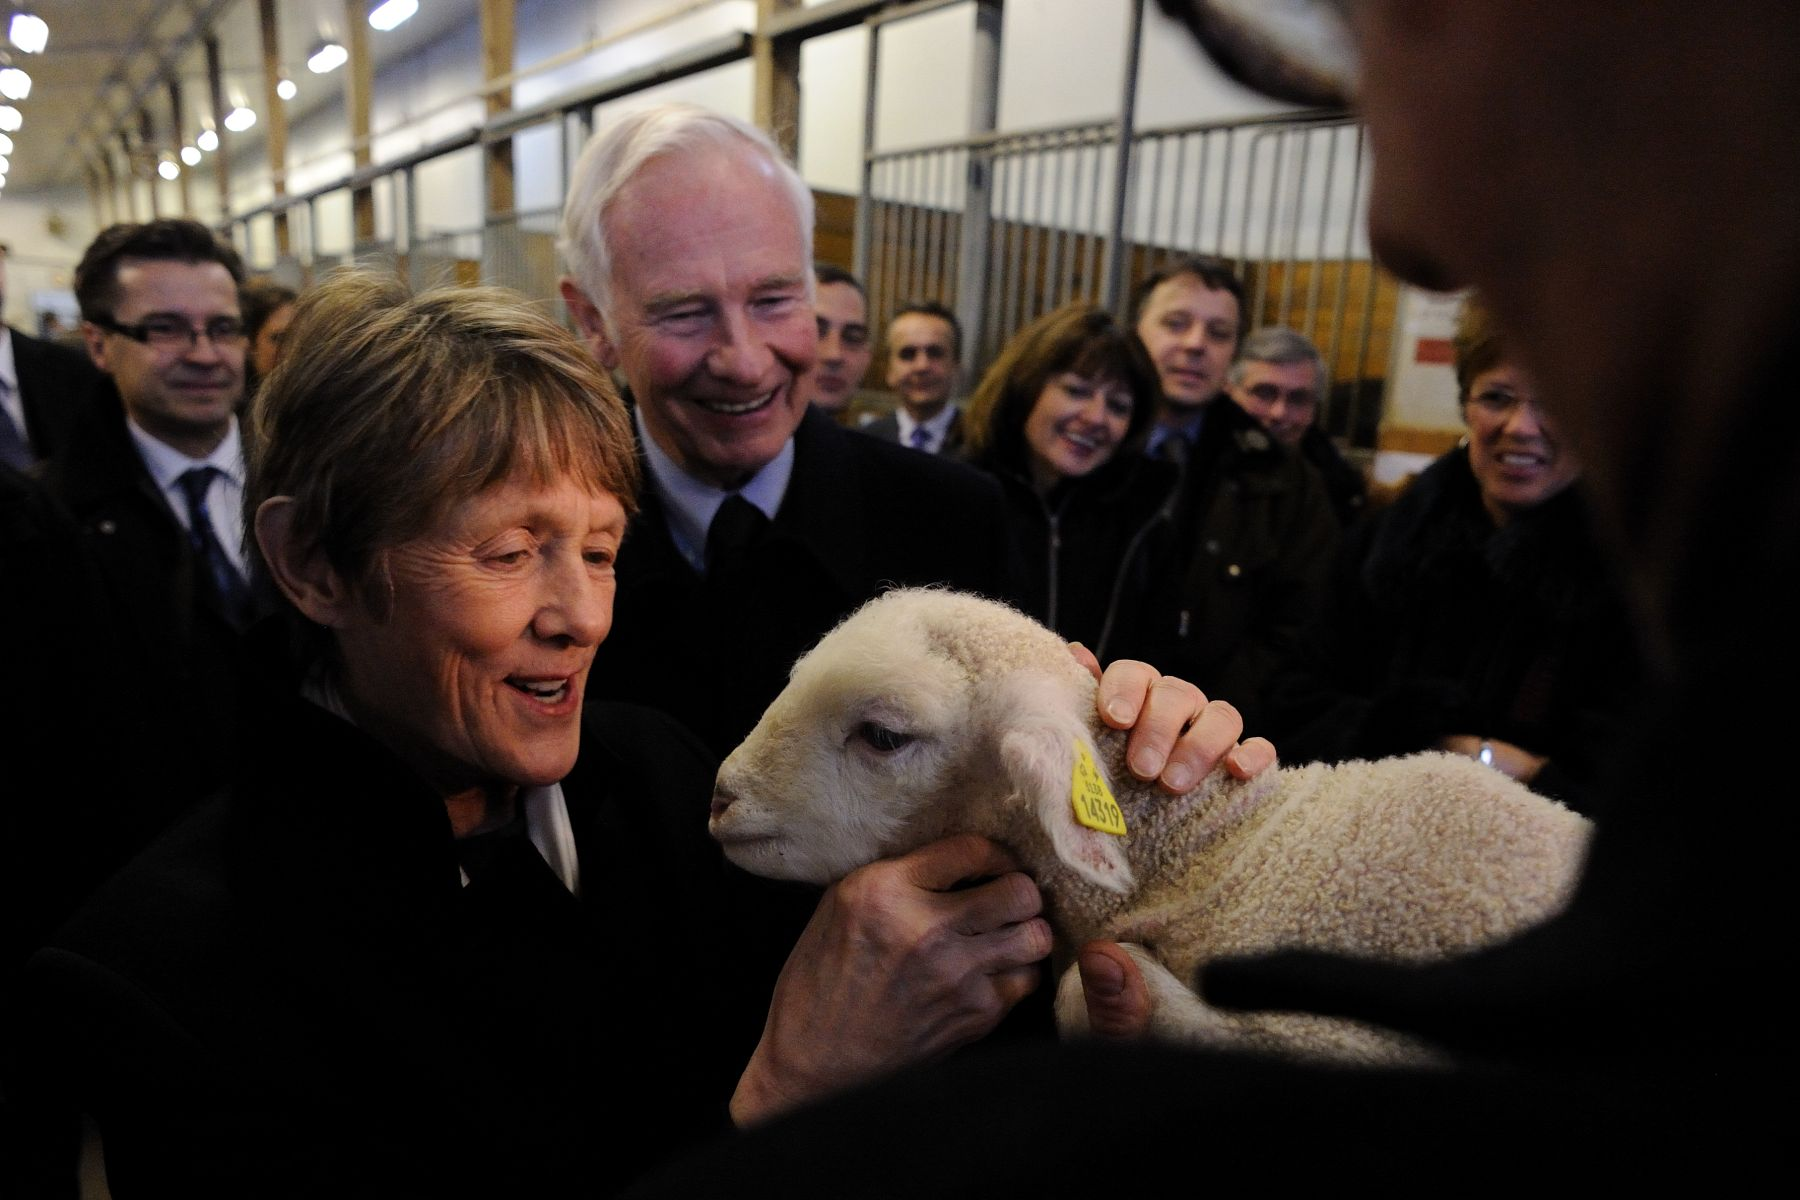 Her Excellency Mrs. Sharon Johnston had the pleasure of petting a lamb.